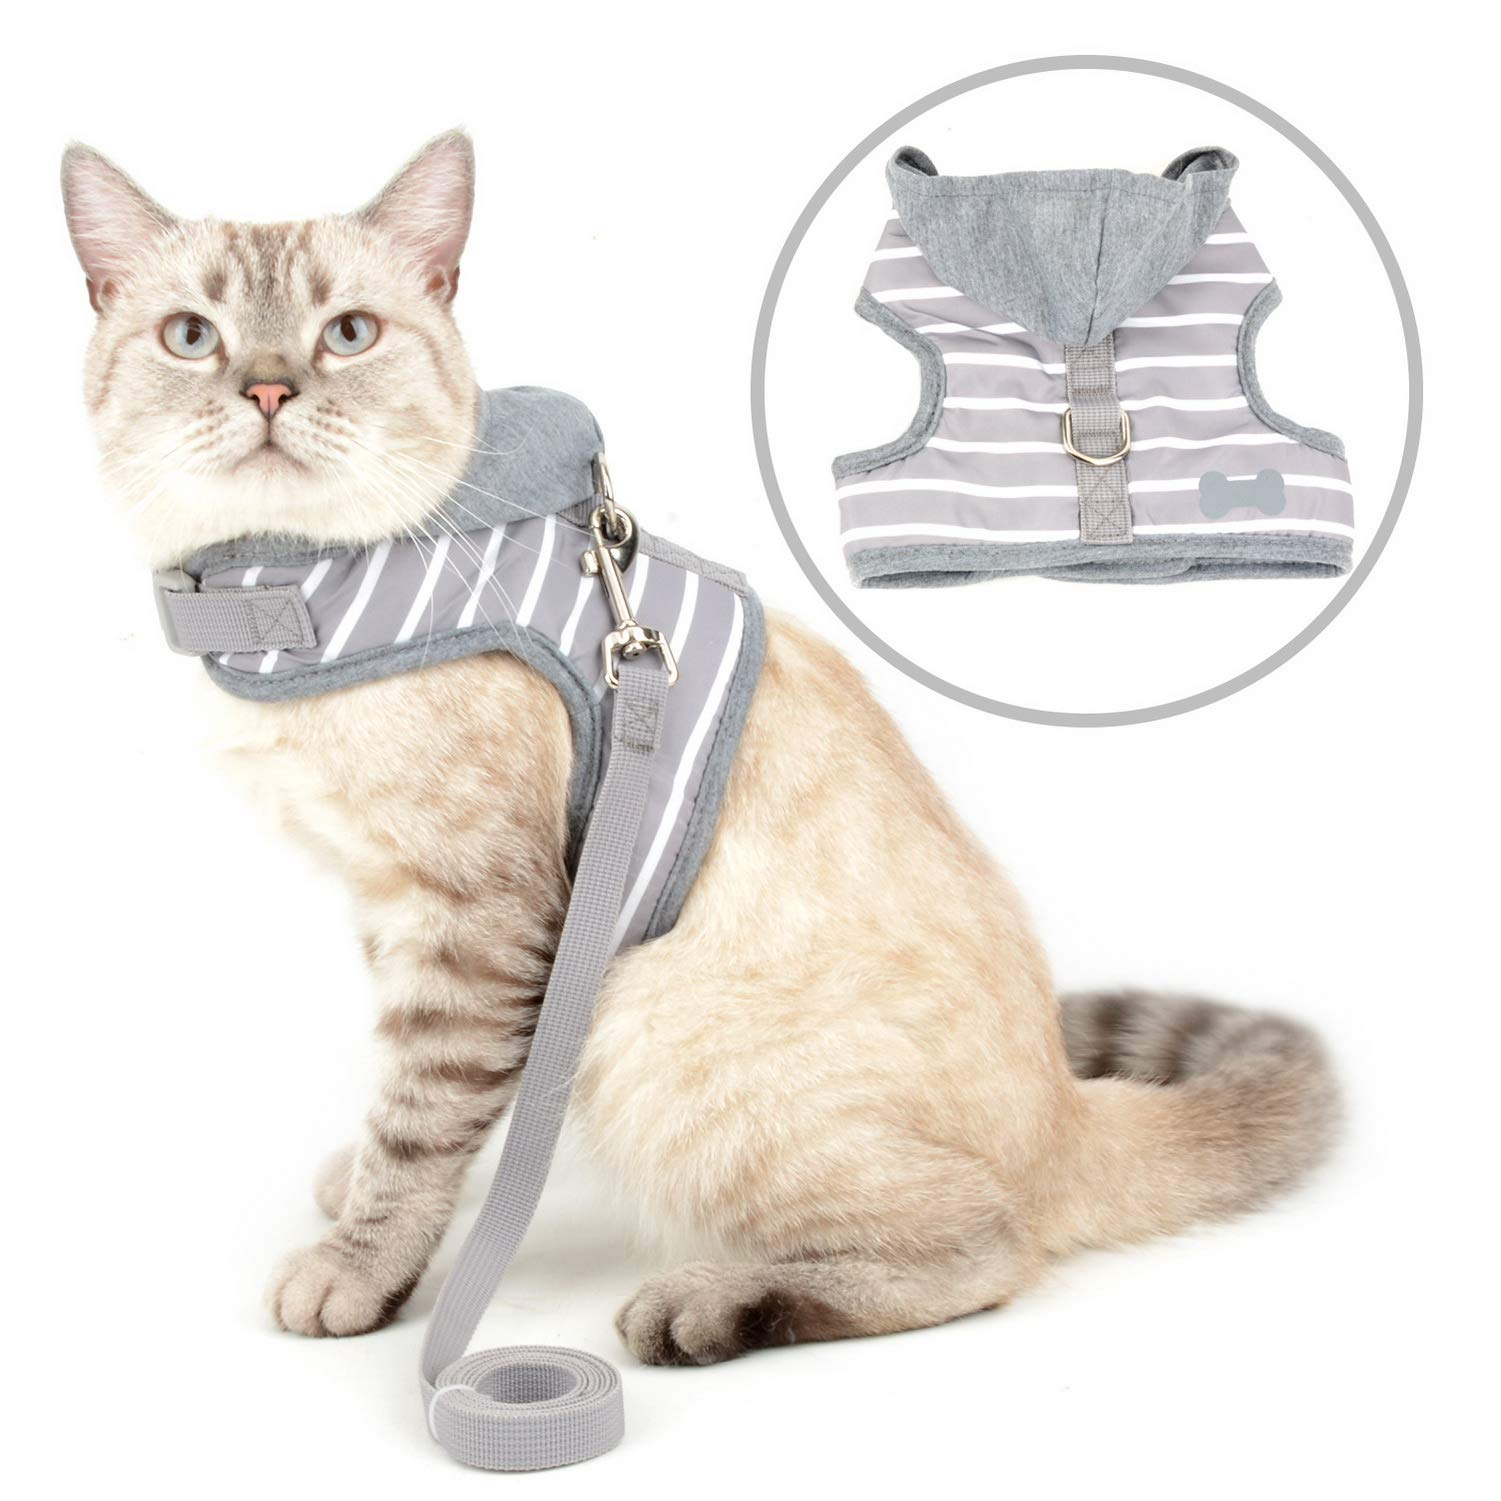 Zunea Escape Proof Cat Harness and Leash Set Small Dog Hoodie Jacket Vest Harness No Pull Step-in Super Soft Sponge Padded Striped Puppy Clothes for Walking Chihuahua Kitten Gray S by Zunea